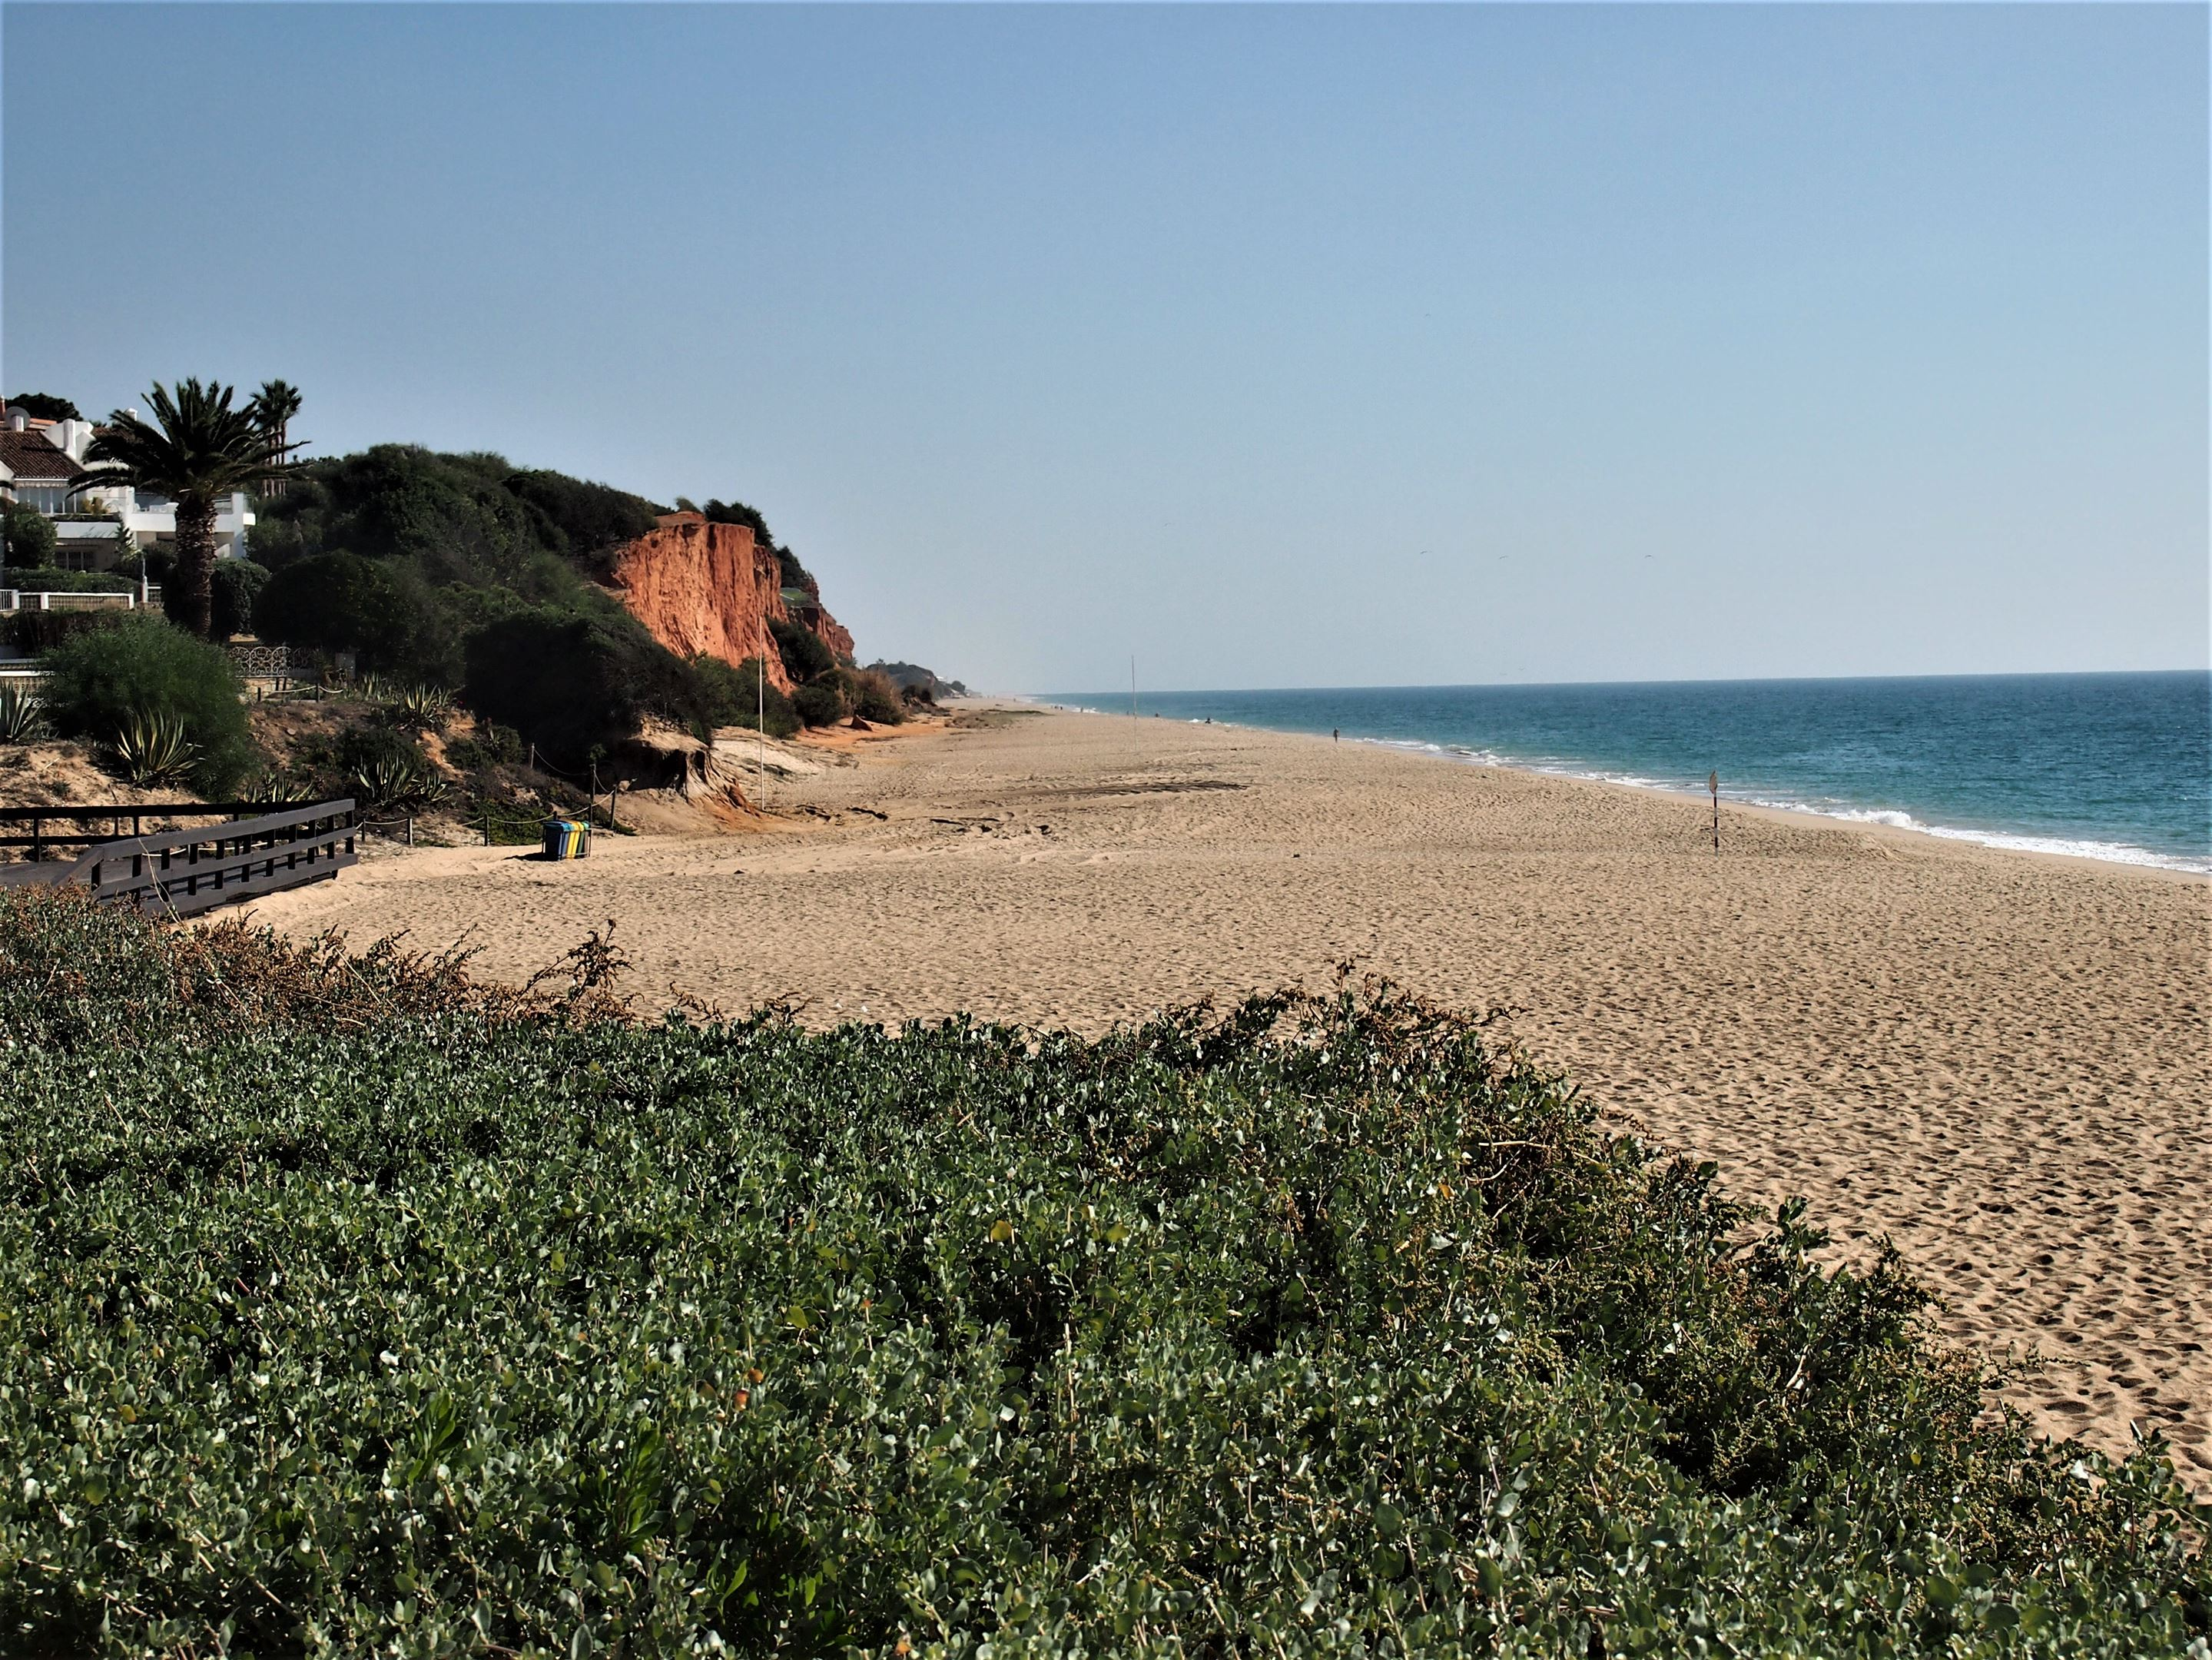 The red cliffs at Praia de Vale do Lobo, Algarve